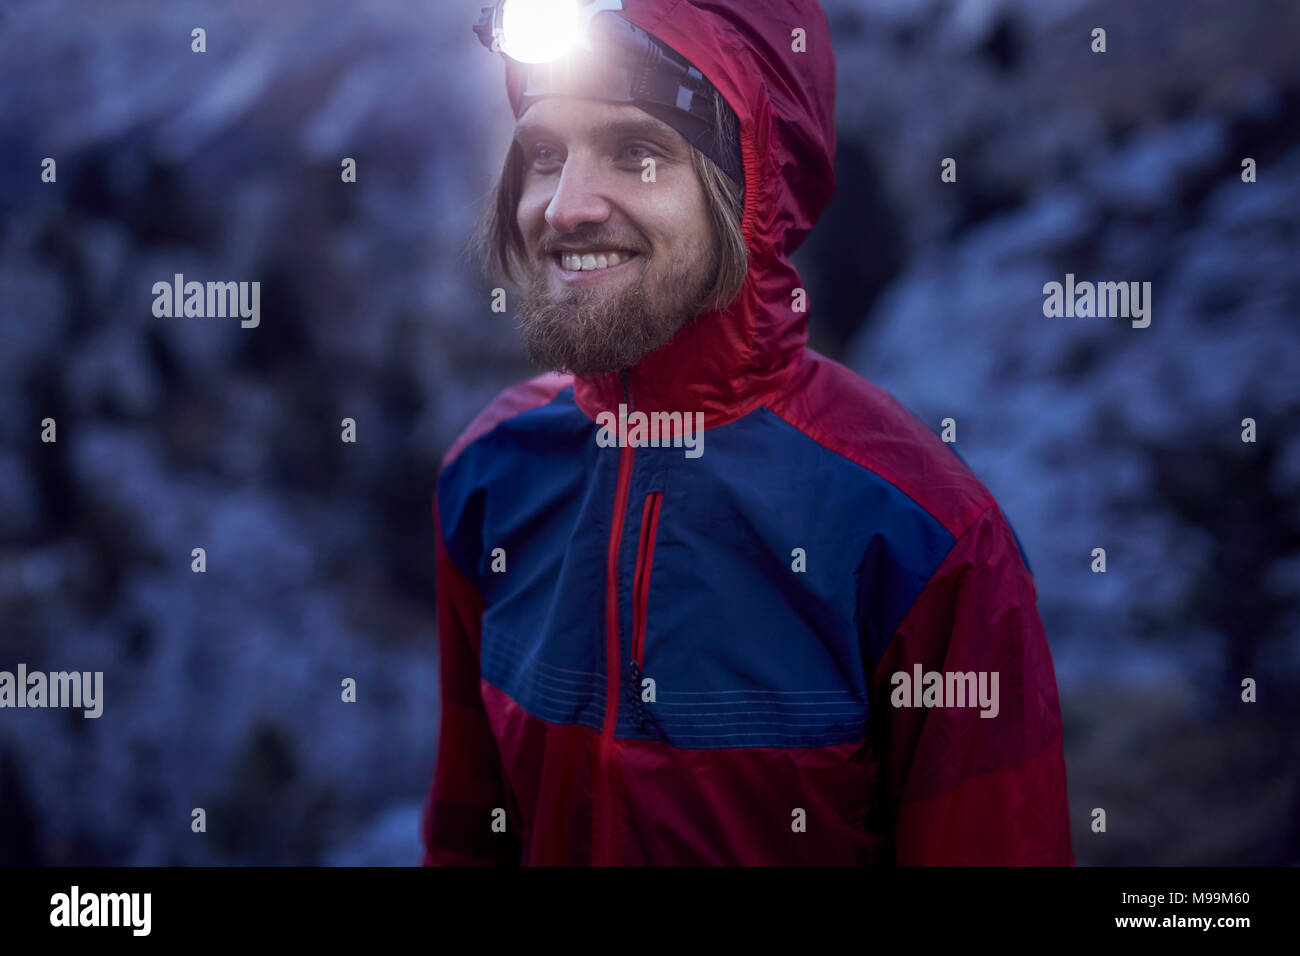 Portrait of smiling man wearing headlamp at dusk in the mountains - Stock Image